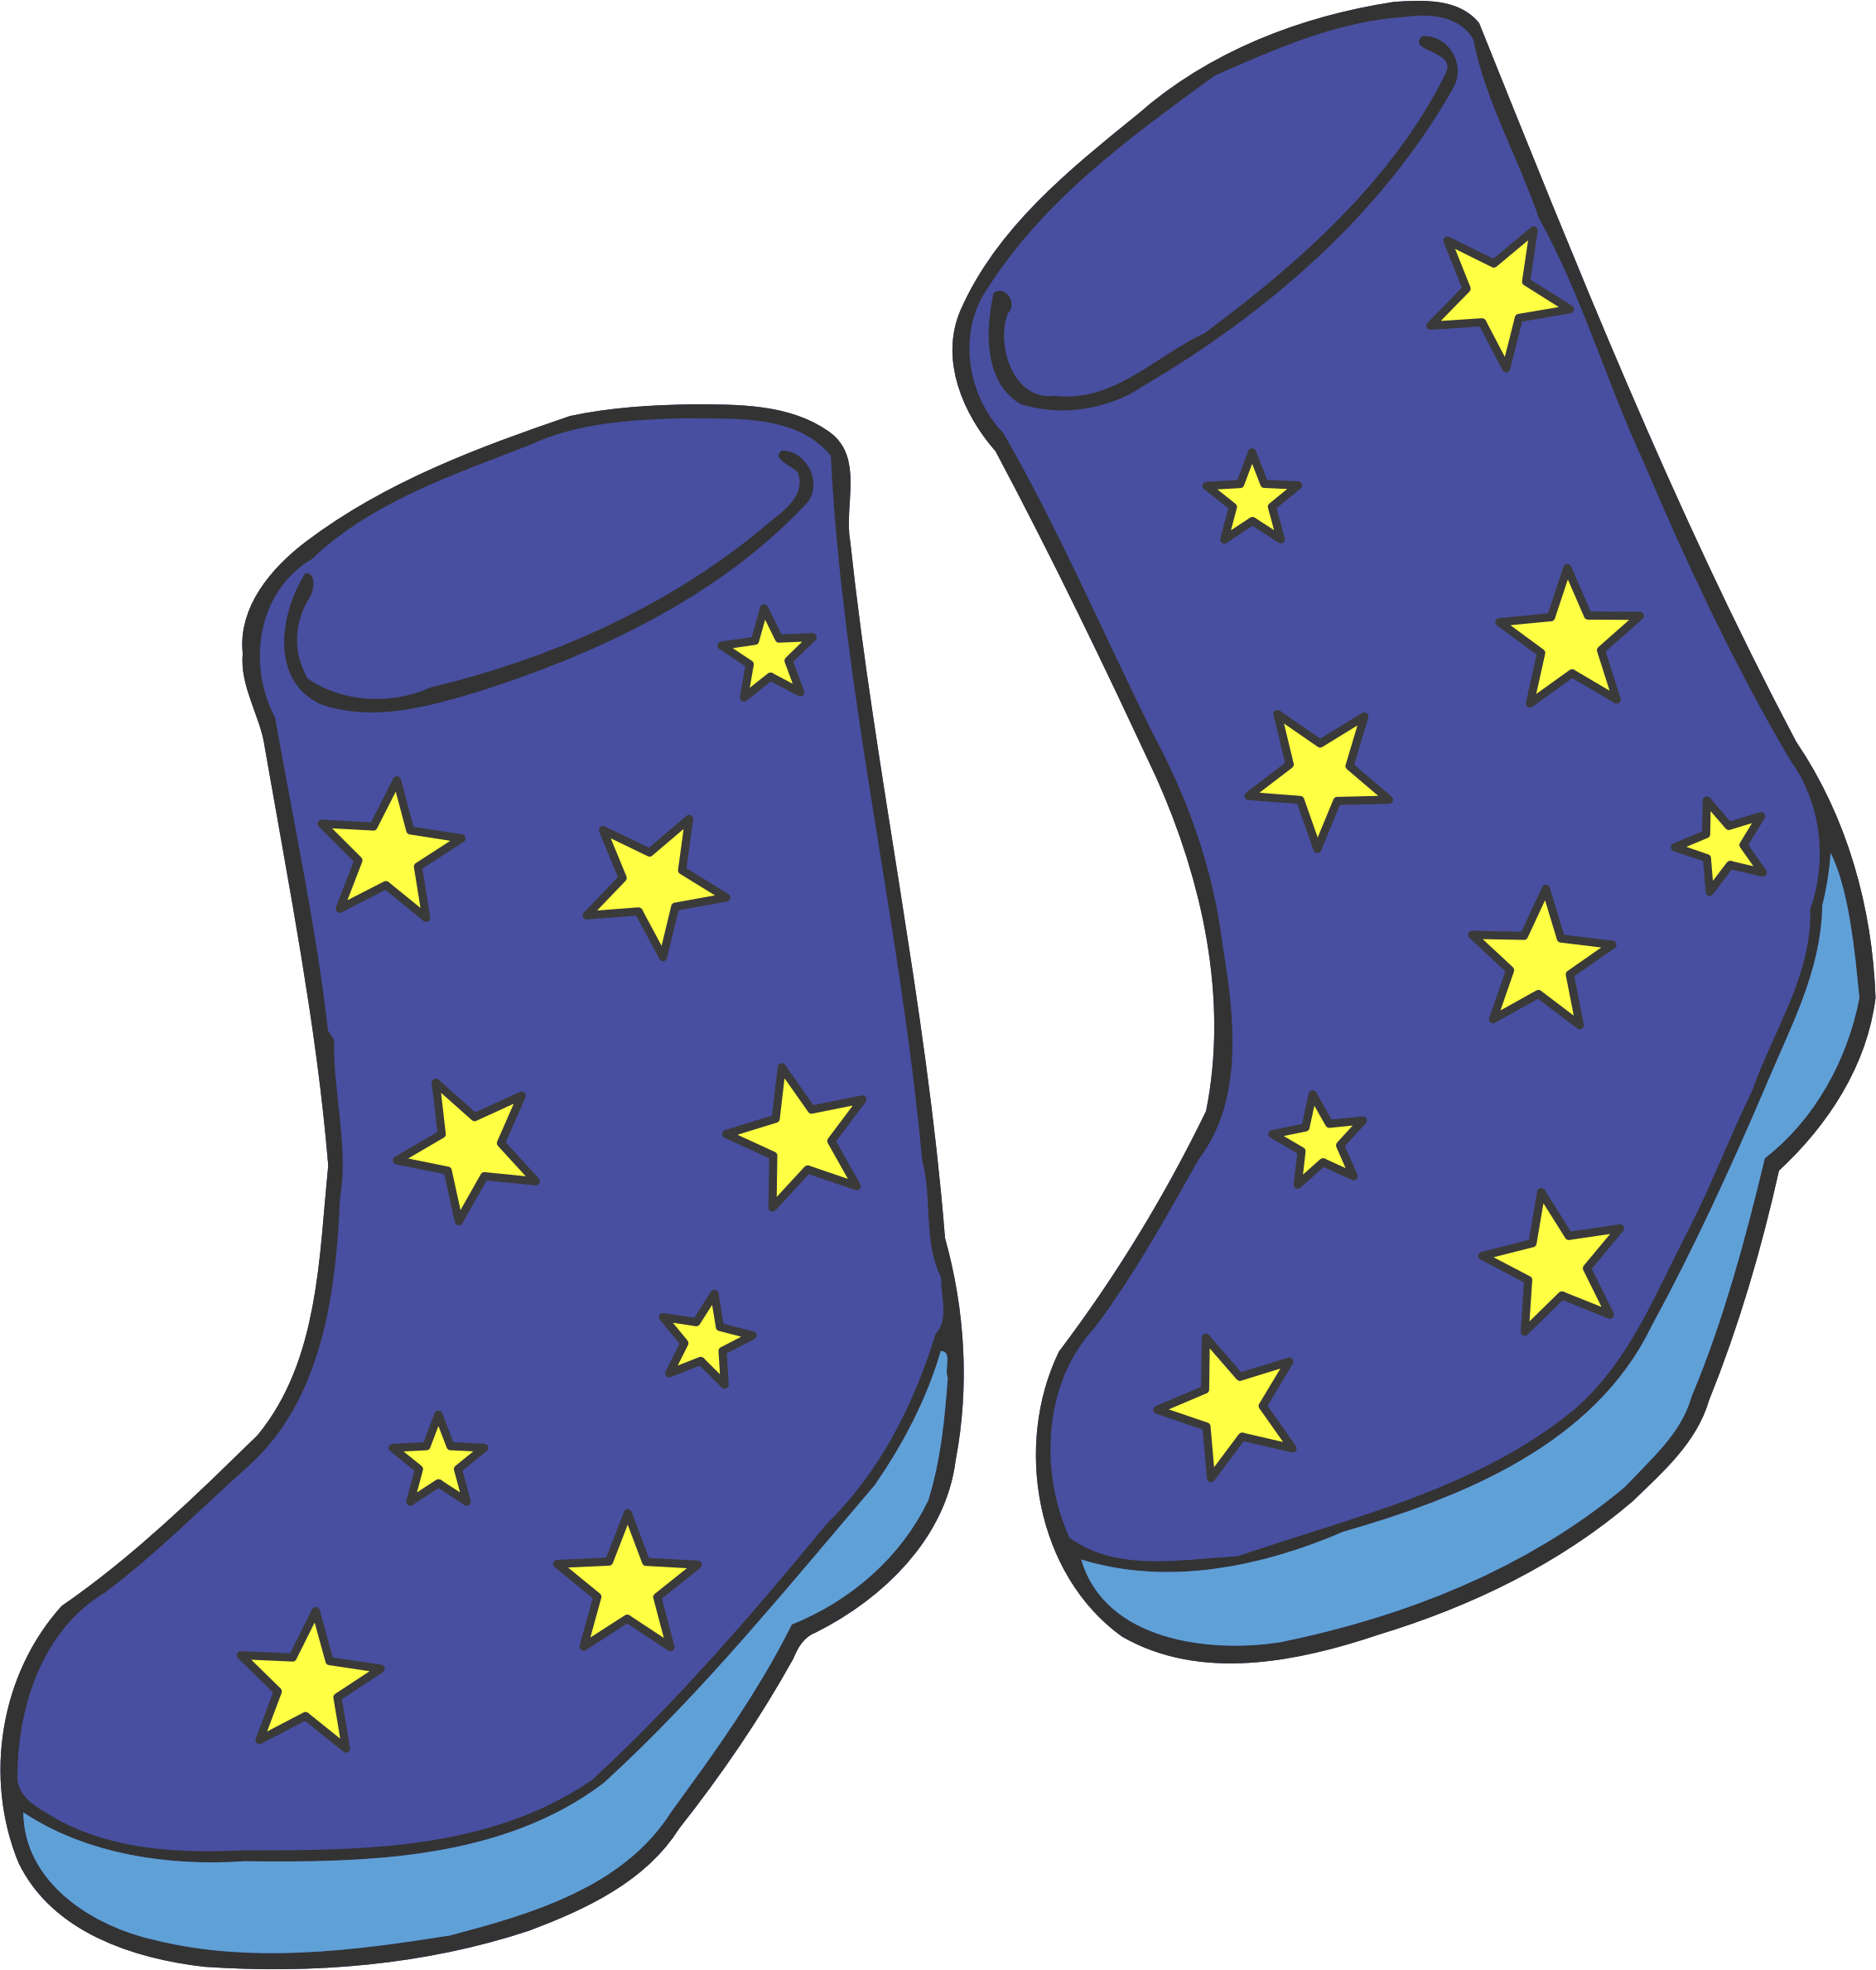 Sock clipart blue boot, Sock blue boot Transparent FREE for.